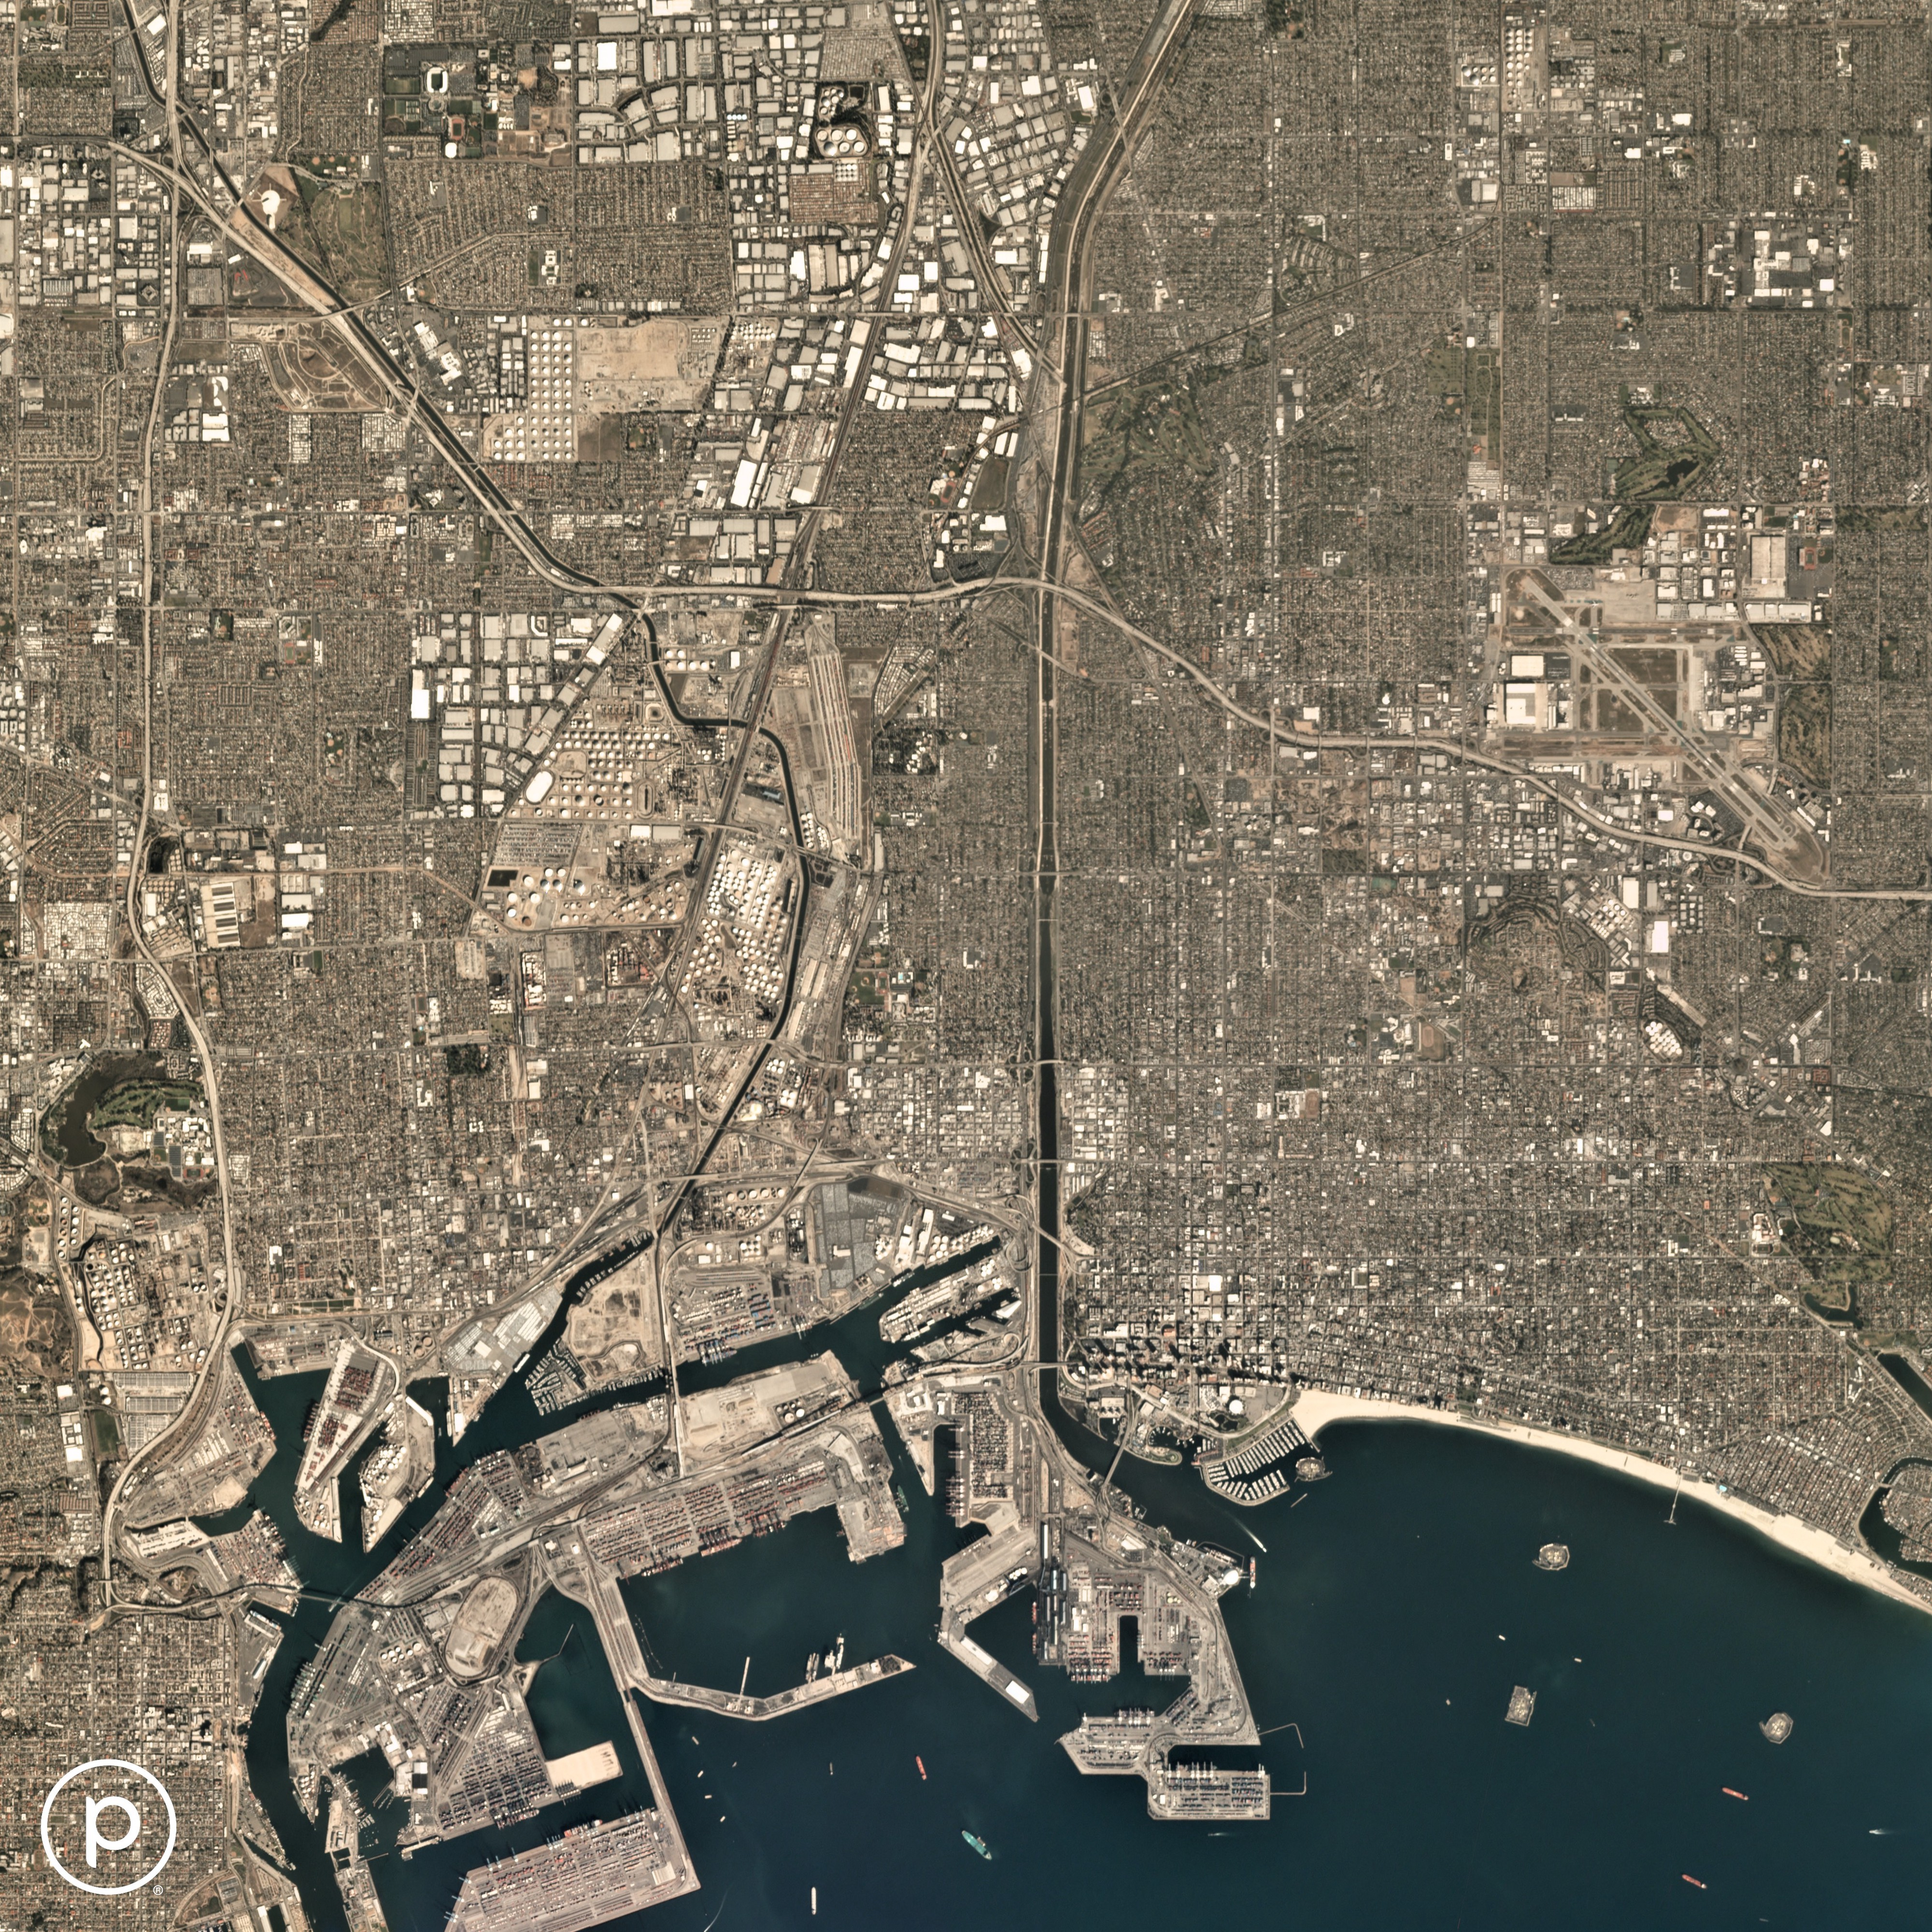 A Handy Introduction to Cloud Optimized GeoTIFFs - Planet